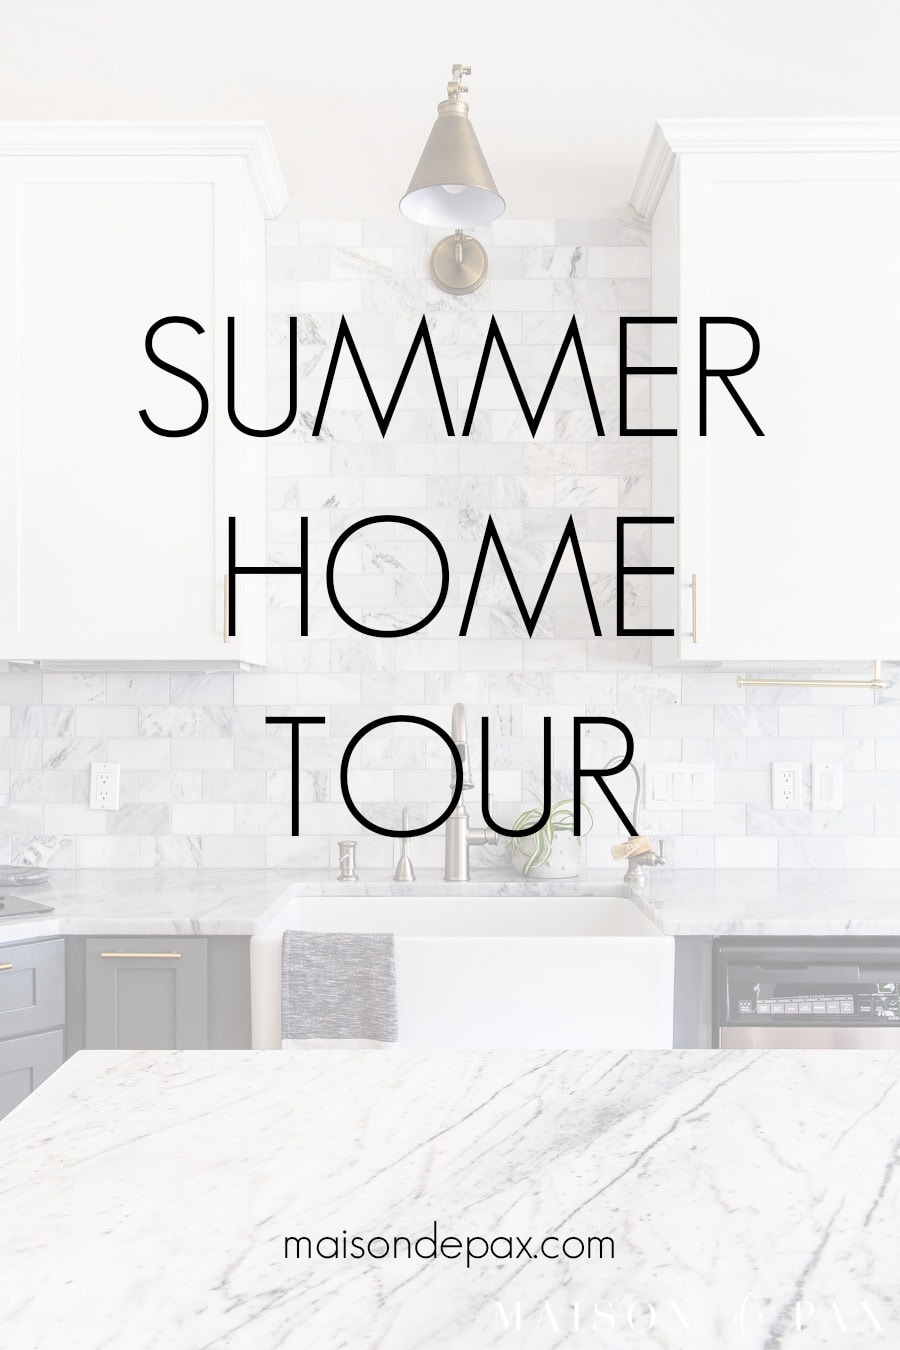 marble kitchen image with overlay: summer home tour maisondepax.com